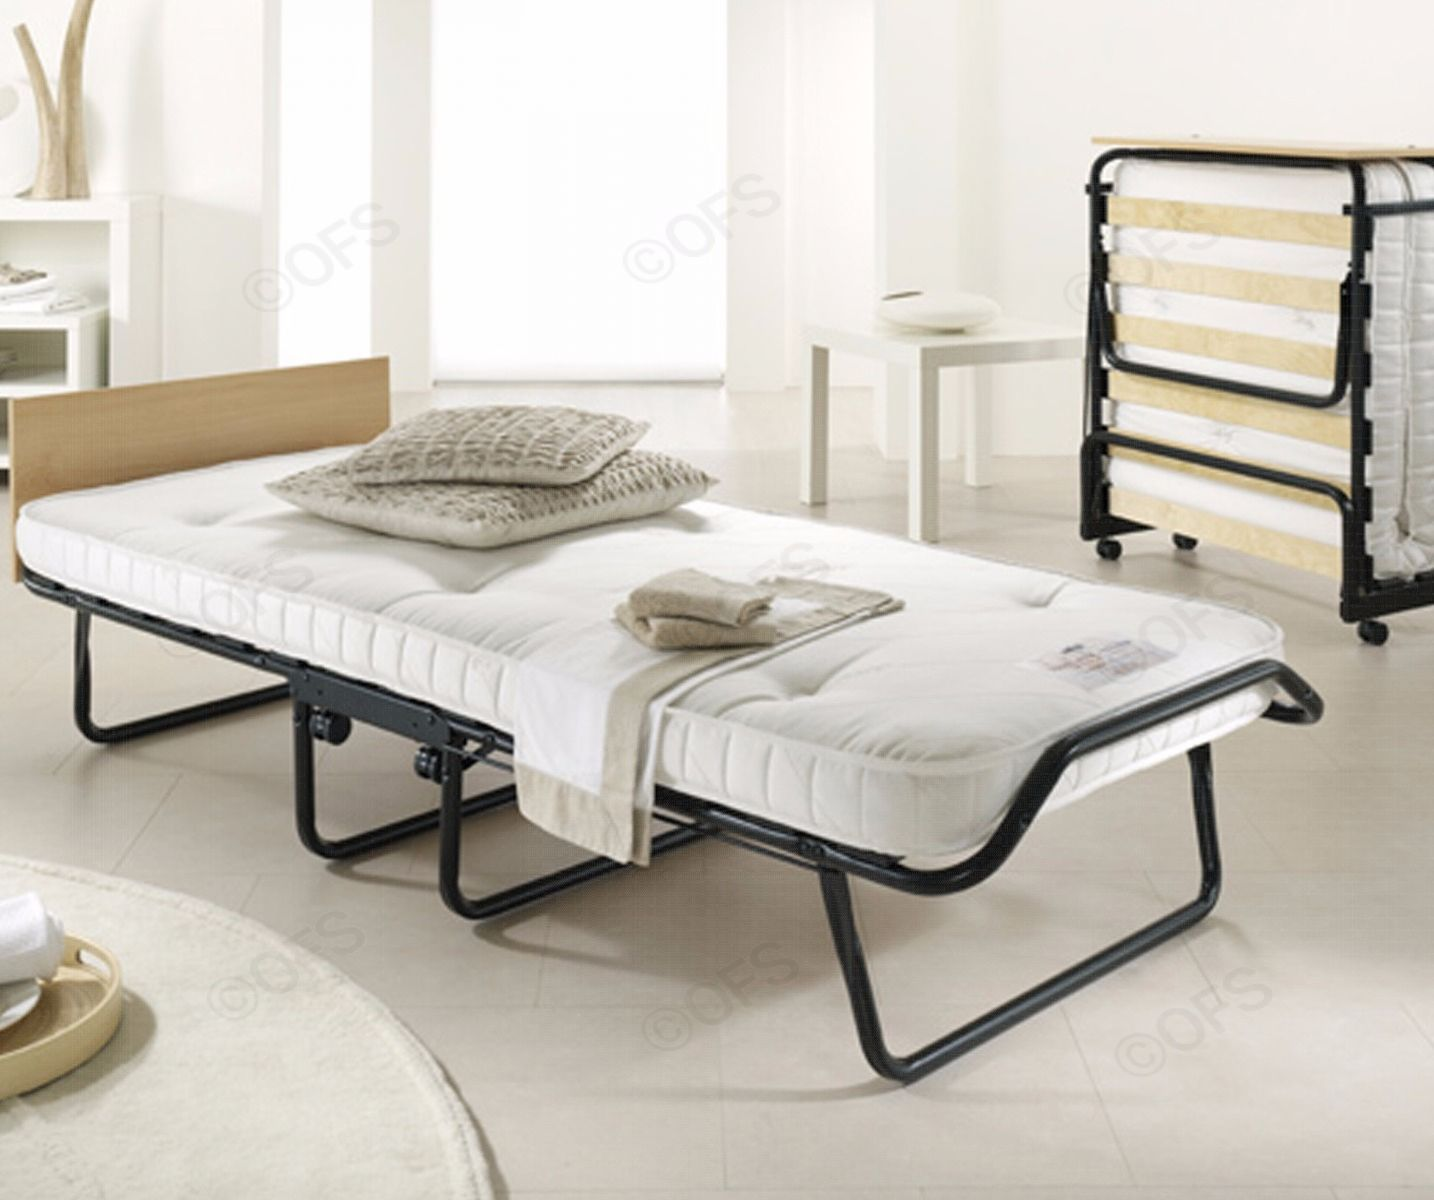 JAYBE Royal Folding Guest Single Bed with Pocket Sprung